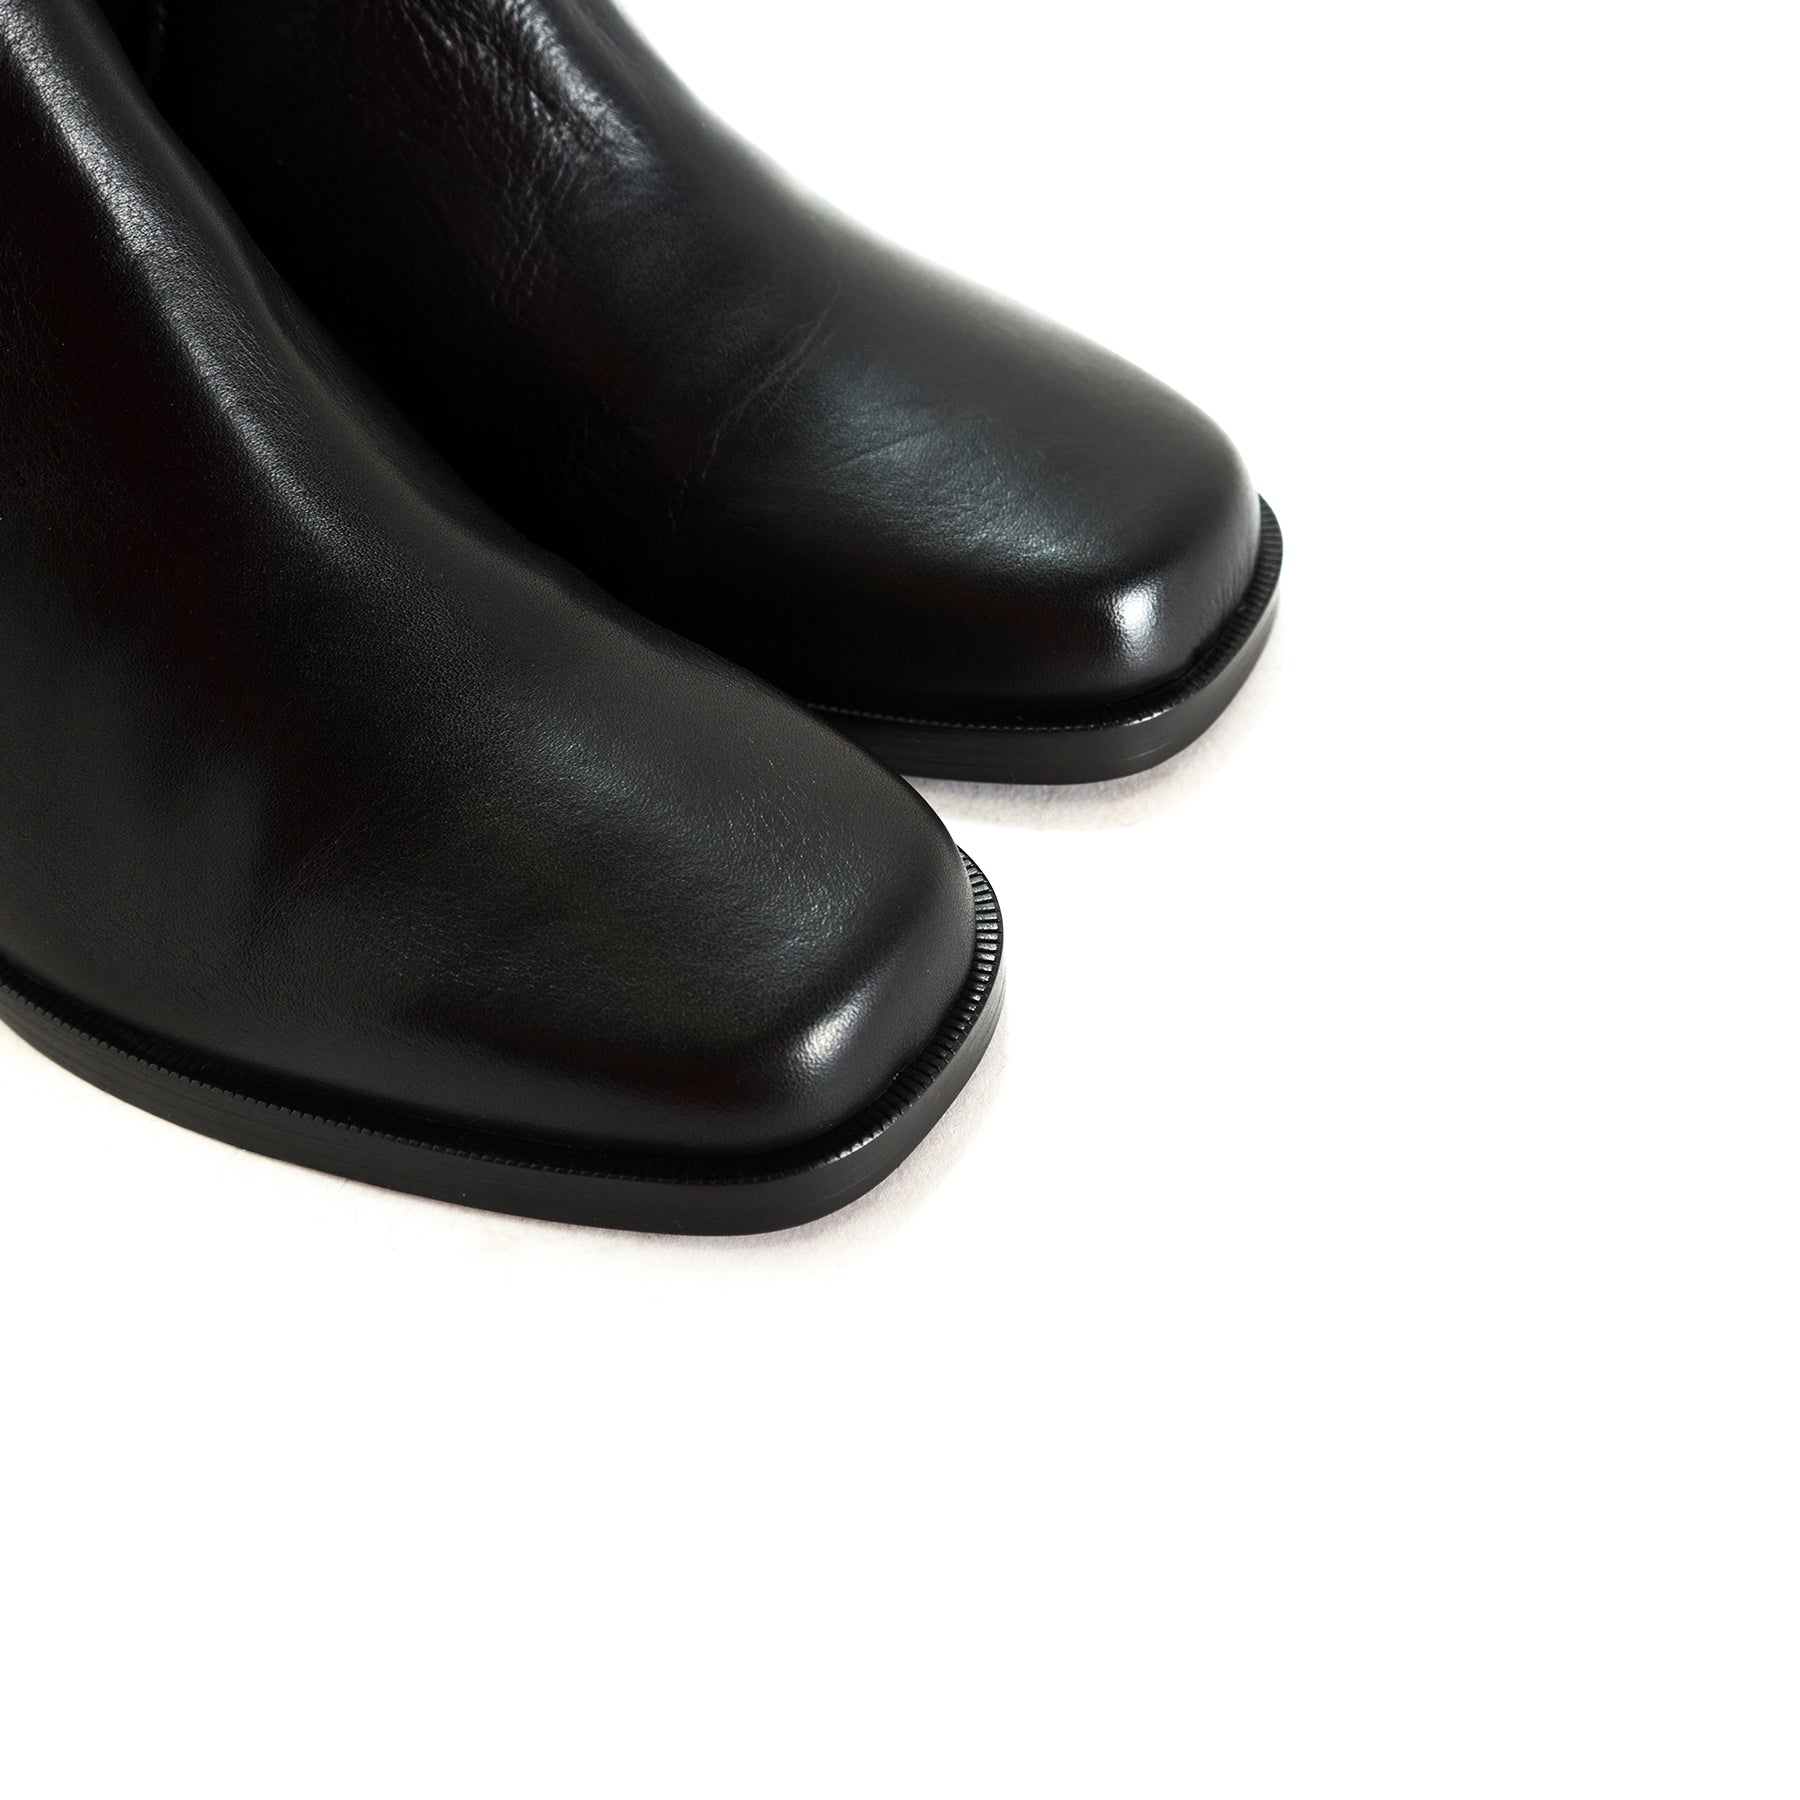 Marseille Black Leather Ankle Boots